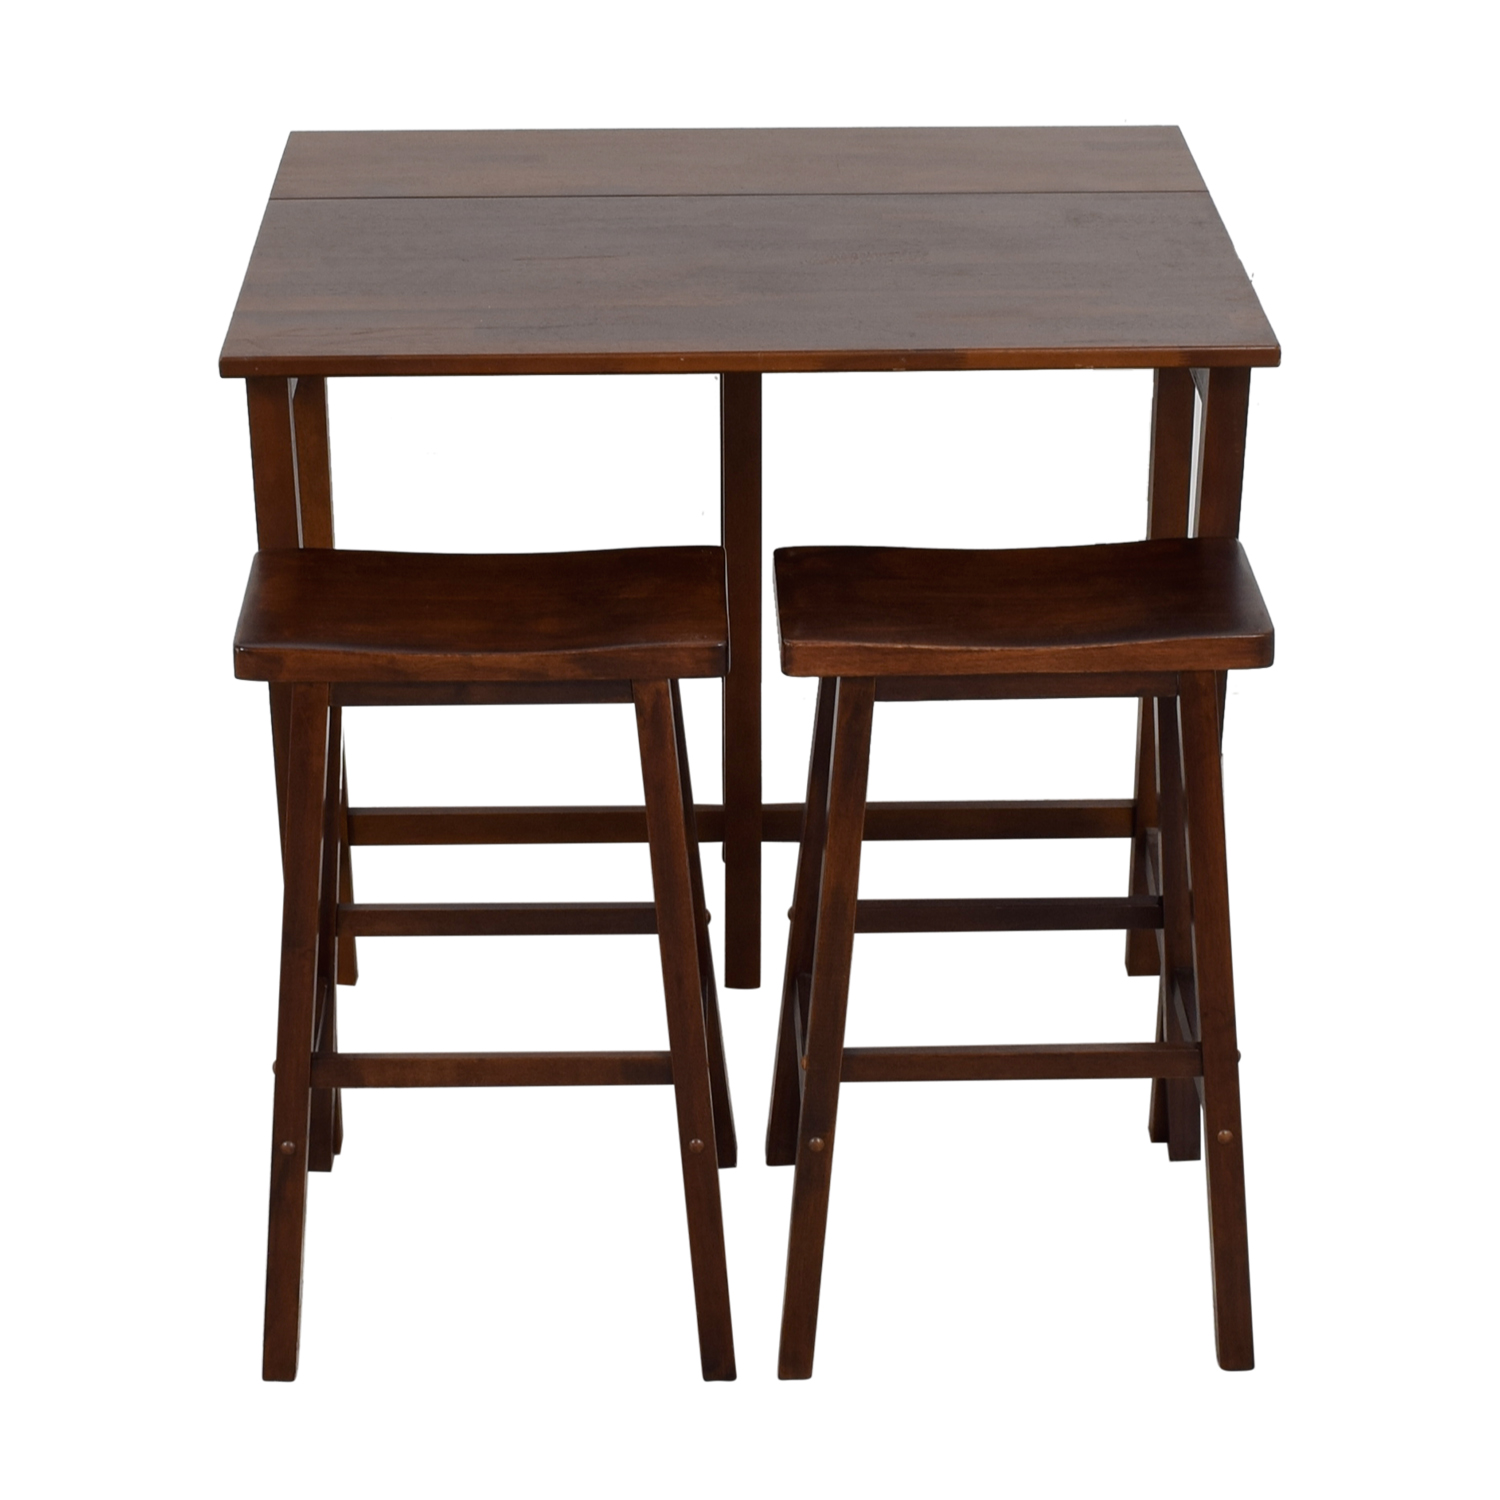 59 Off One Sided Wood Drop Leaf Kitchen Set With Stools